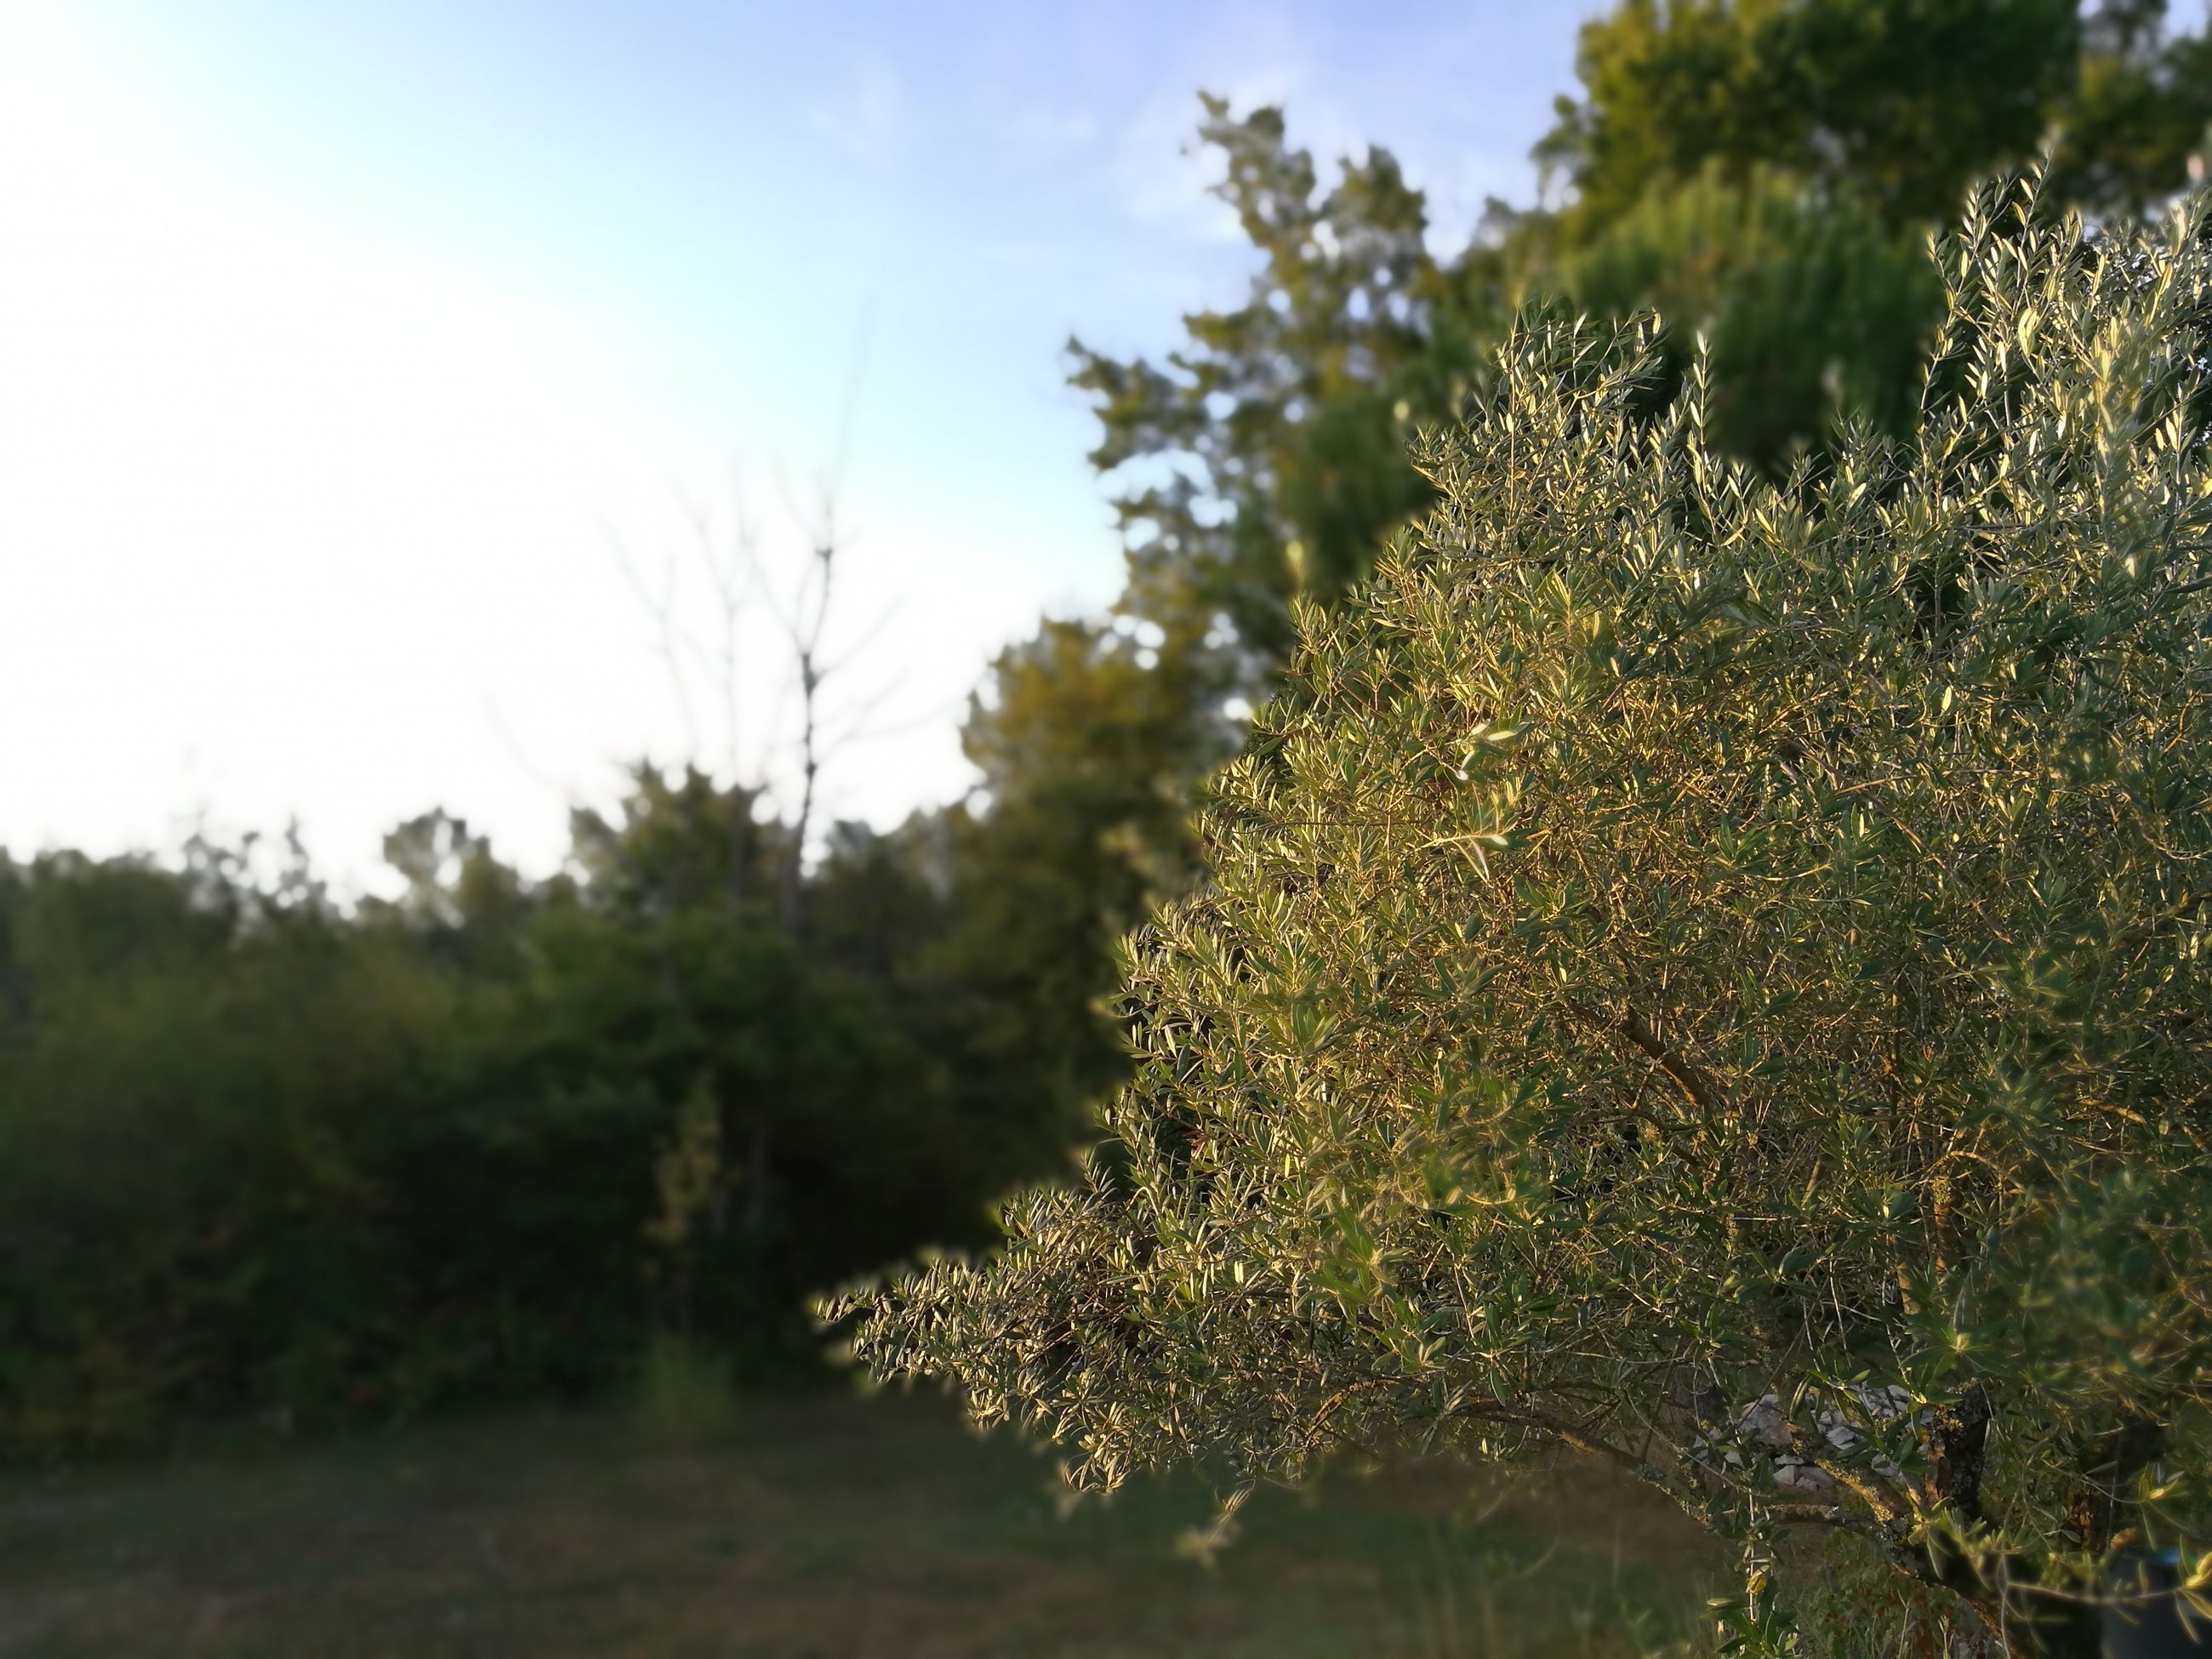 plant, close-up, growth, focus on foreground, nature, beauty in nature, scenics, green color, day, sky, tranquility, botany, fragility, freshness, tranquil scene, branch, outdoors, non-urban scene, no people, growing